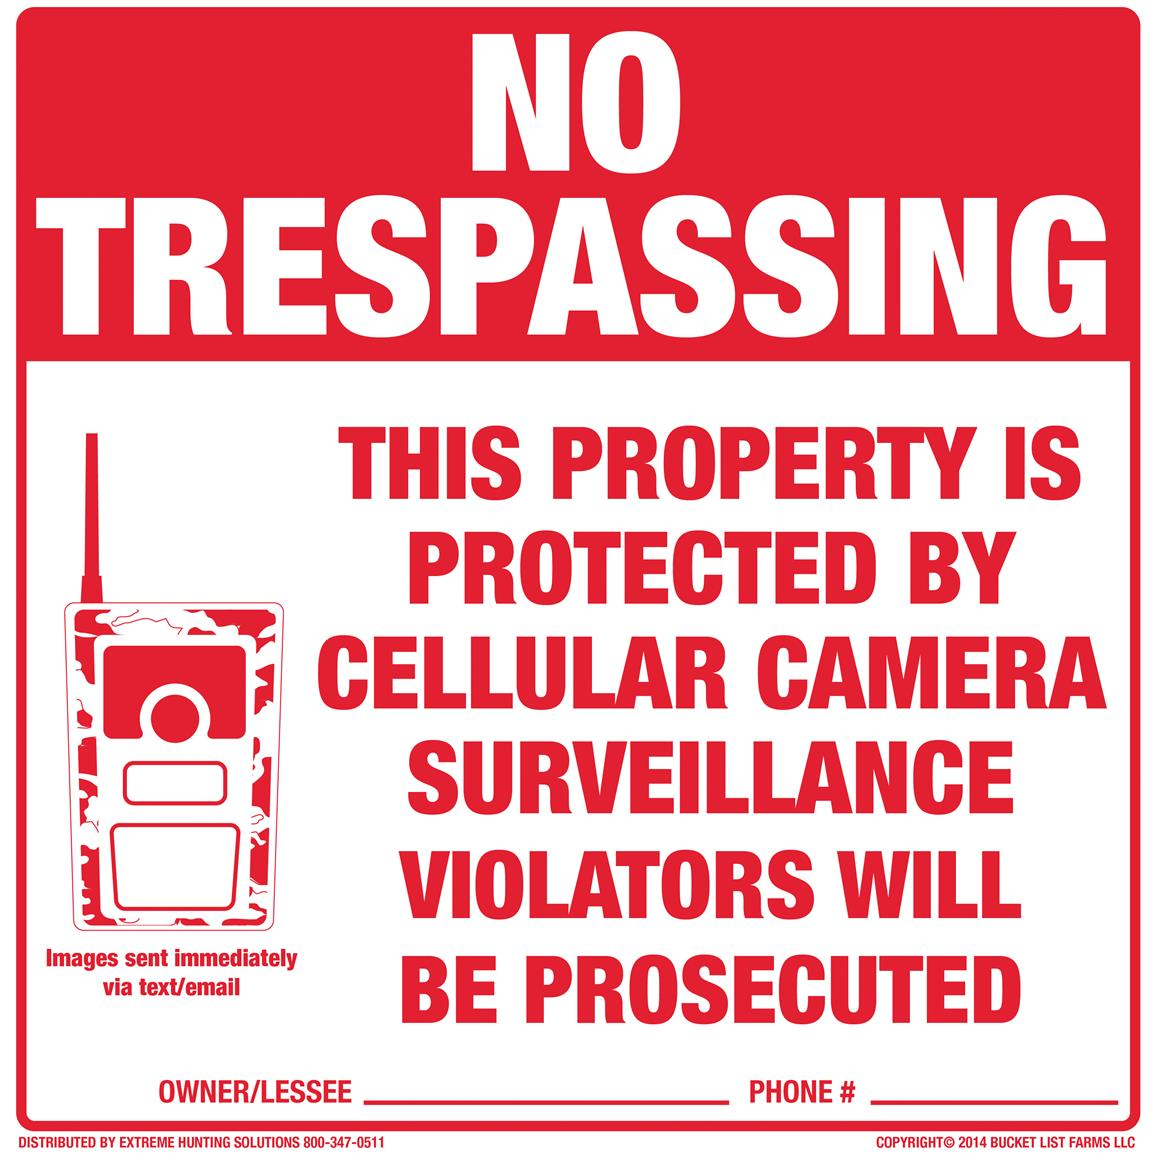 Extreme Hunting Solutions Tyvek No Trespassing Signs, 10 Pack